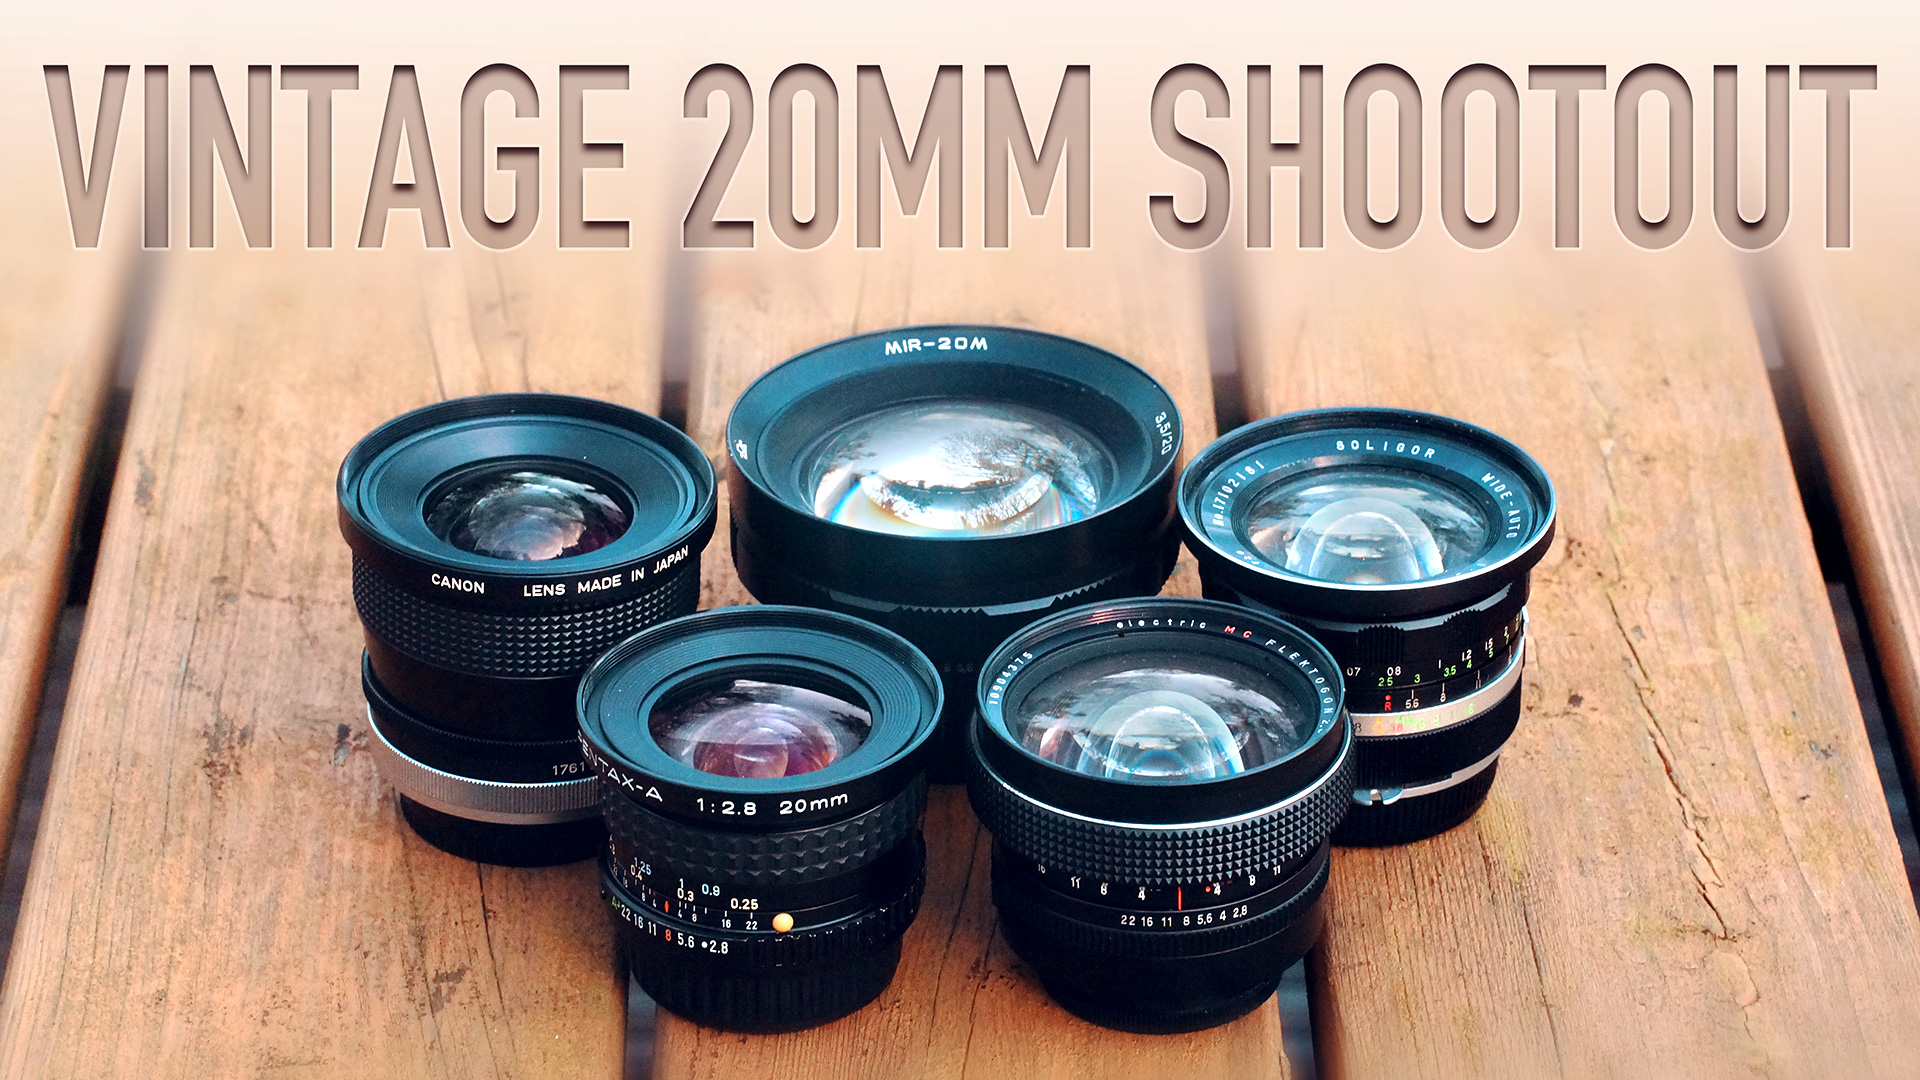 Vintage 20mm Shootout